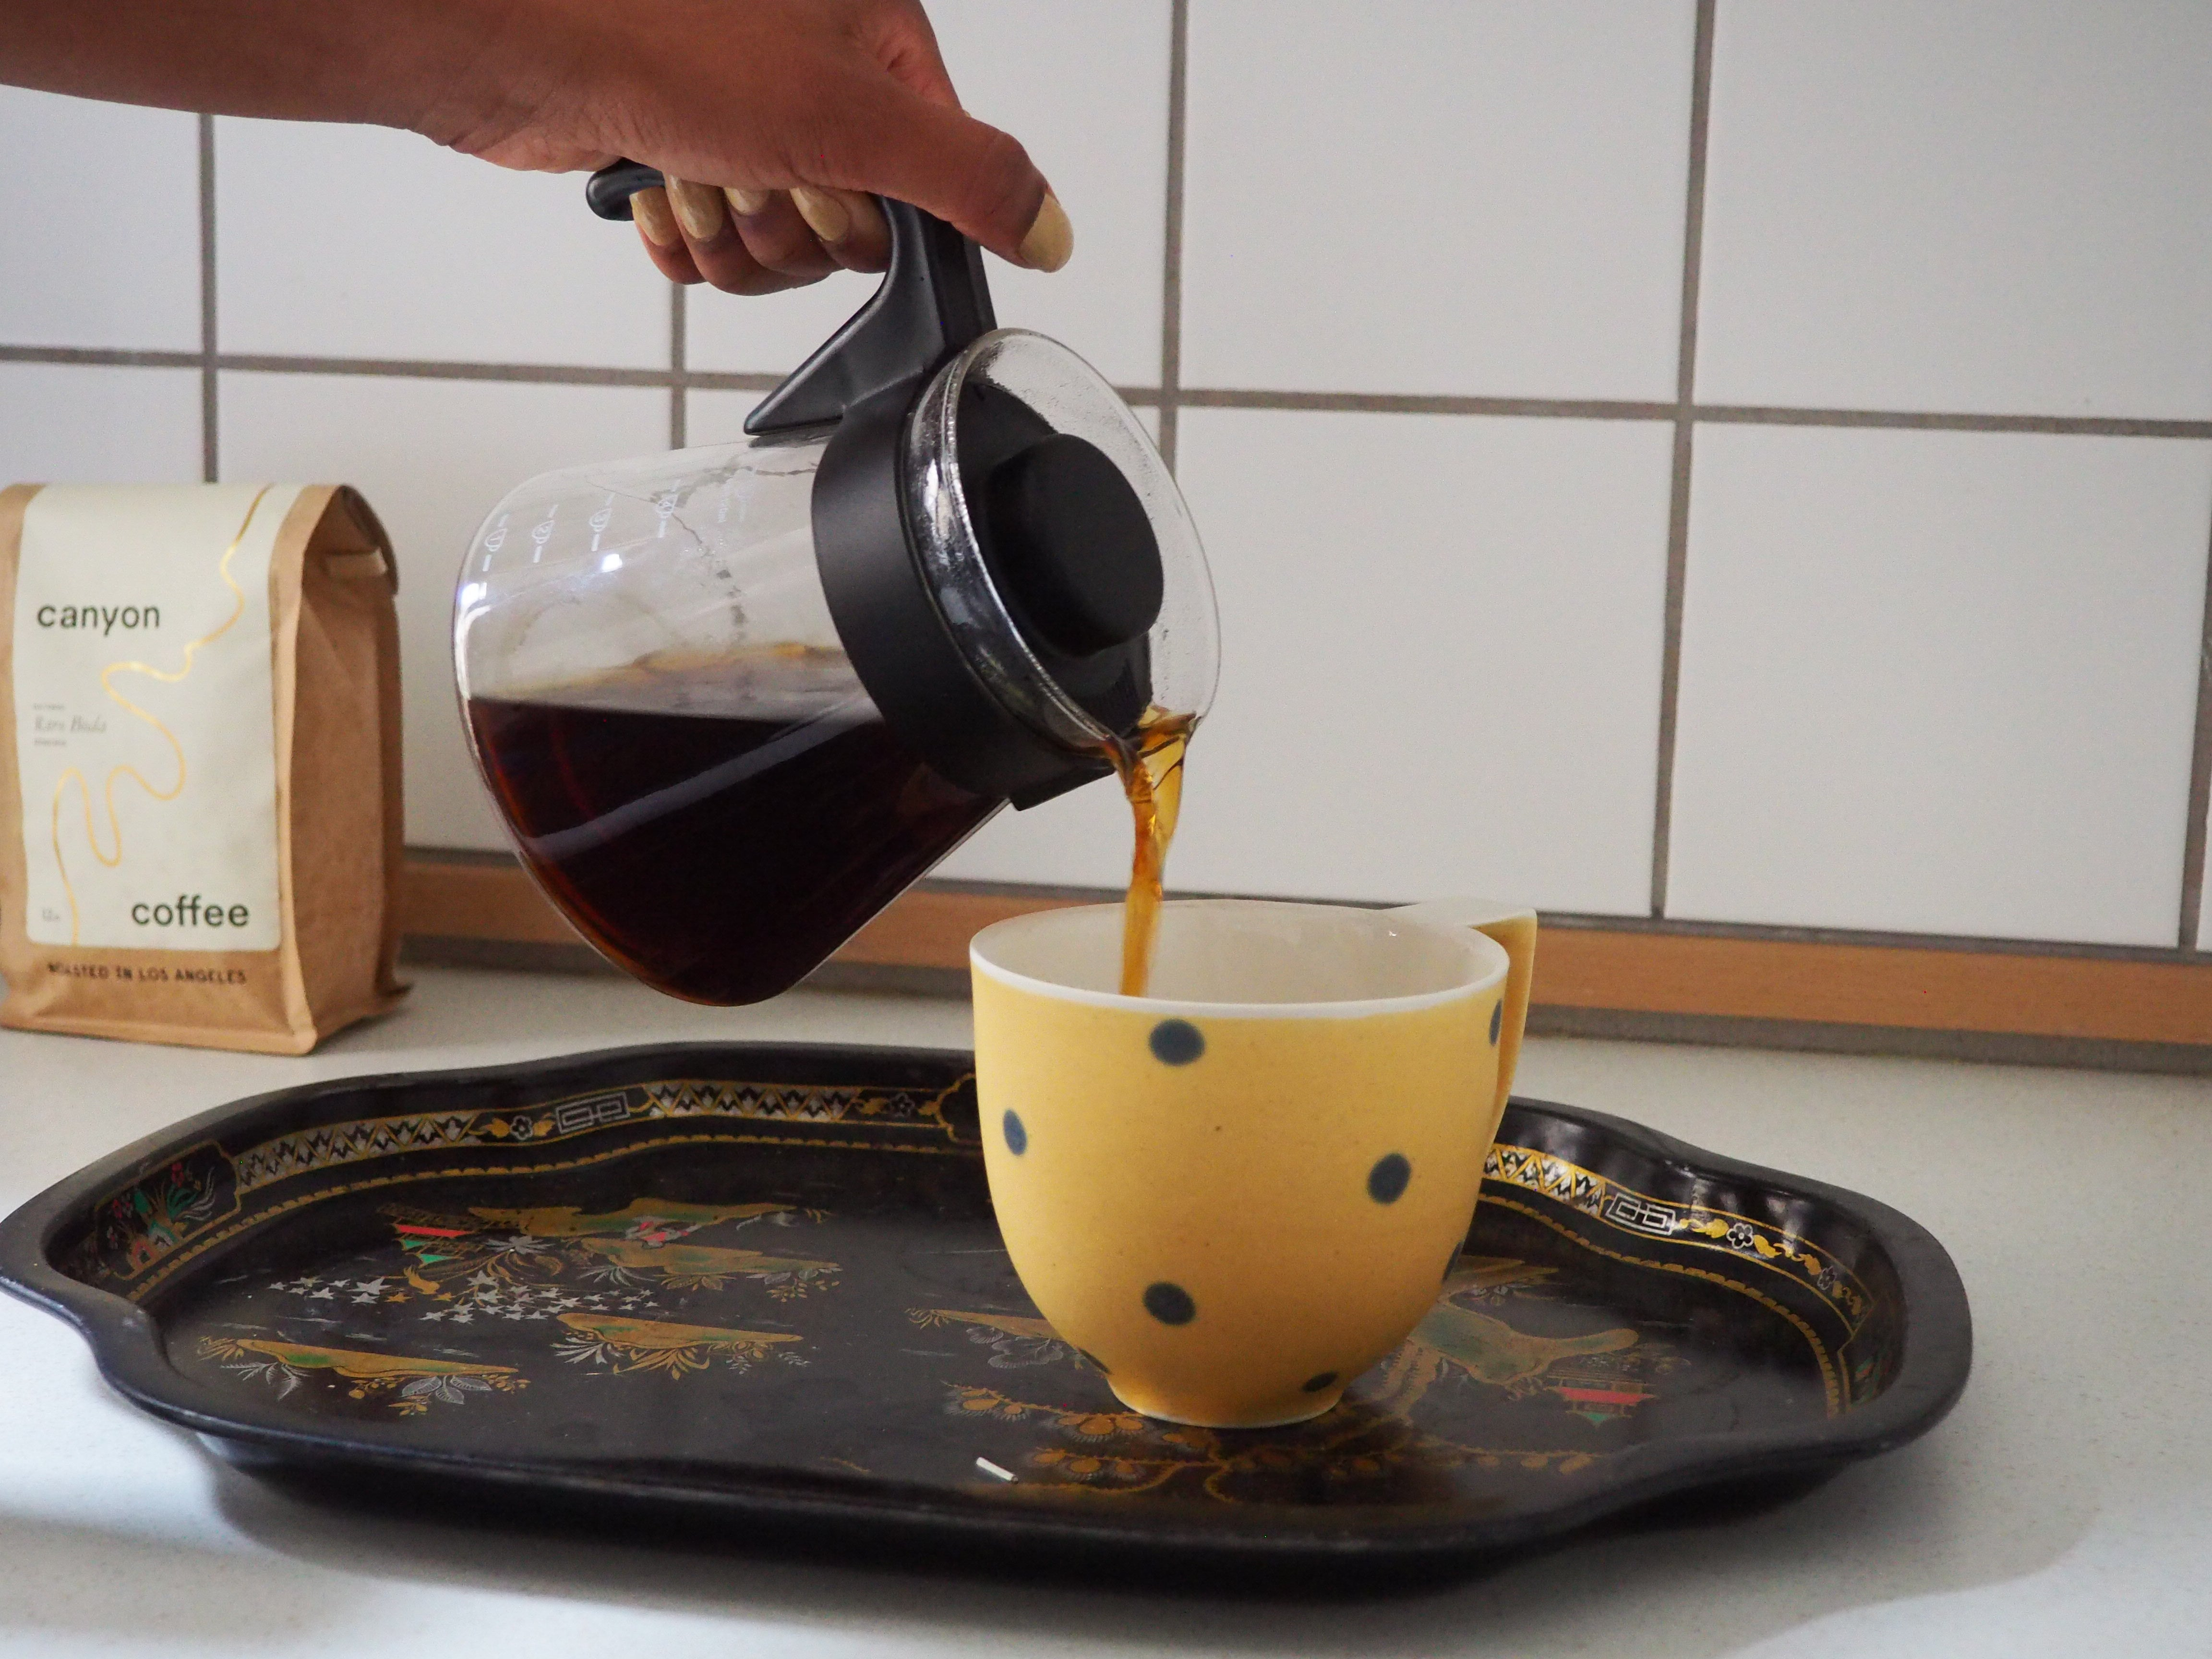 Pour over made with Canyon Coffee in a sunny kitchen.